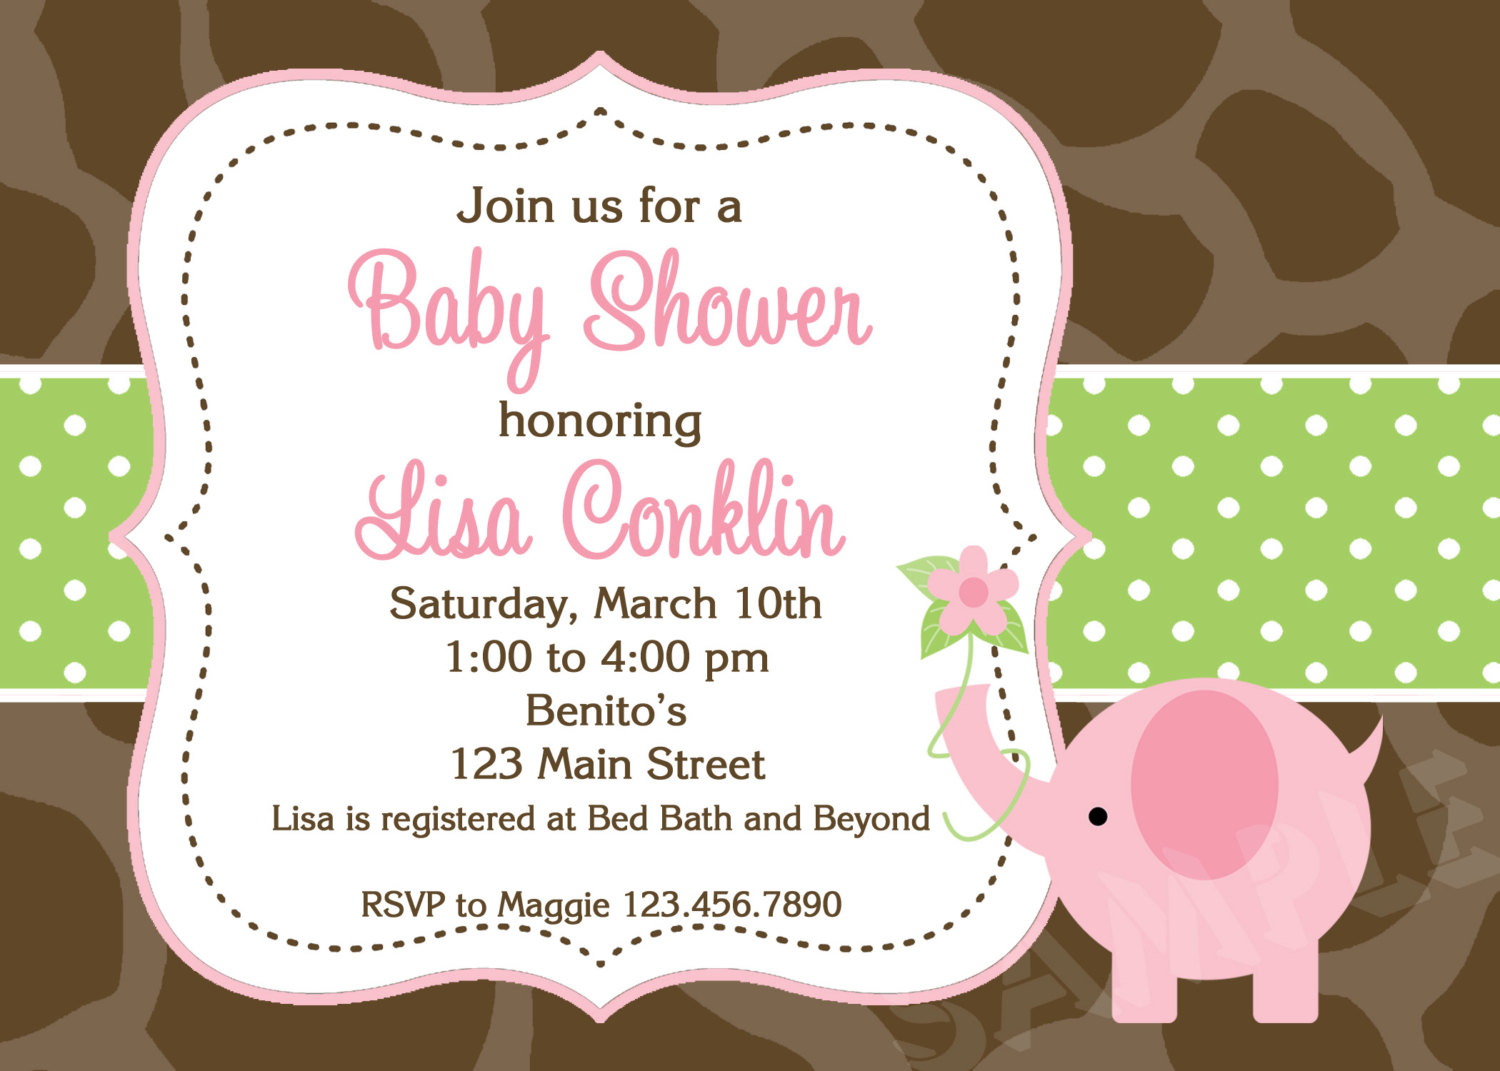 Printable Elephant Baby Shower Invitations My Face Burns After Shower - Free Printable Elephant Baby Shower Invitations